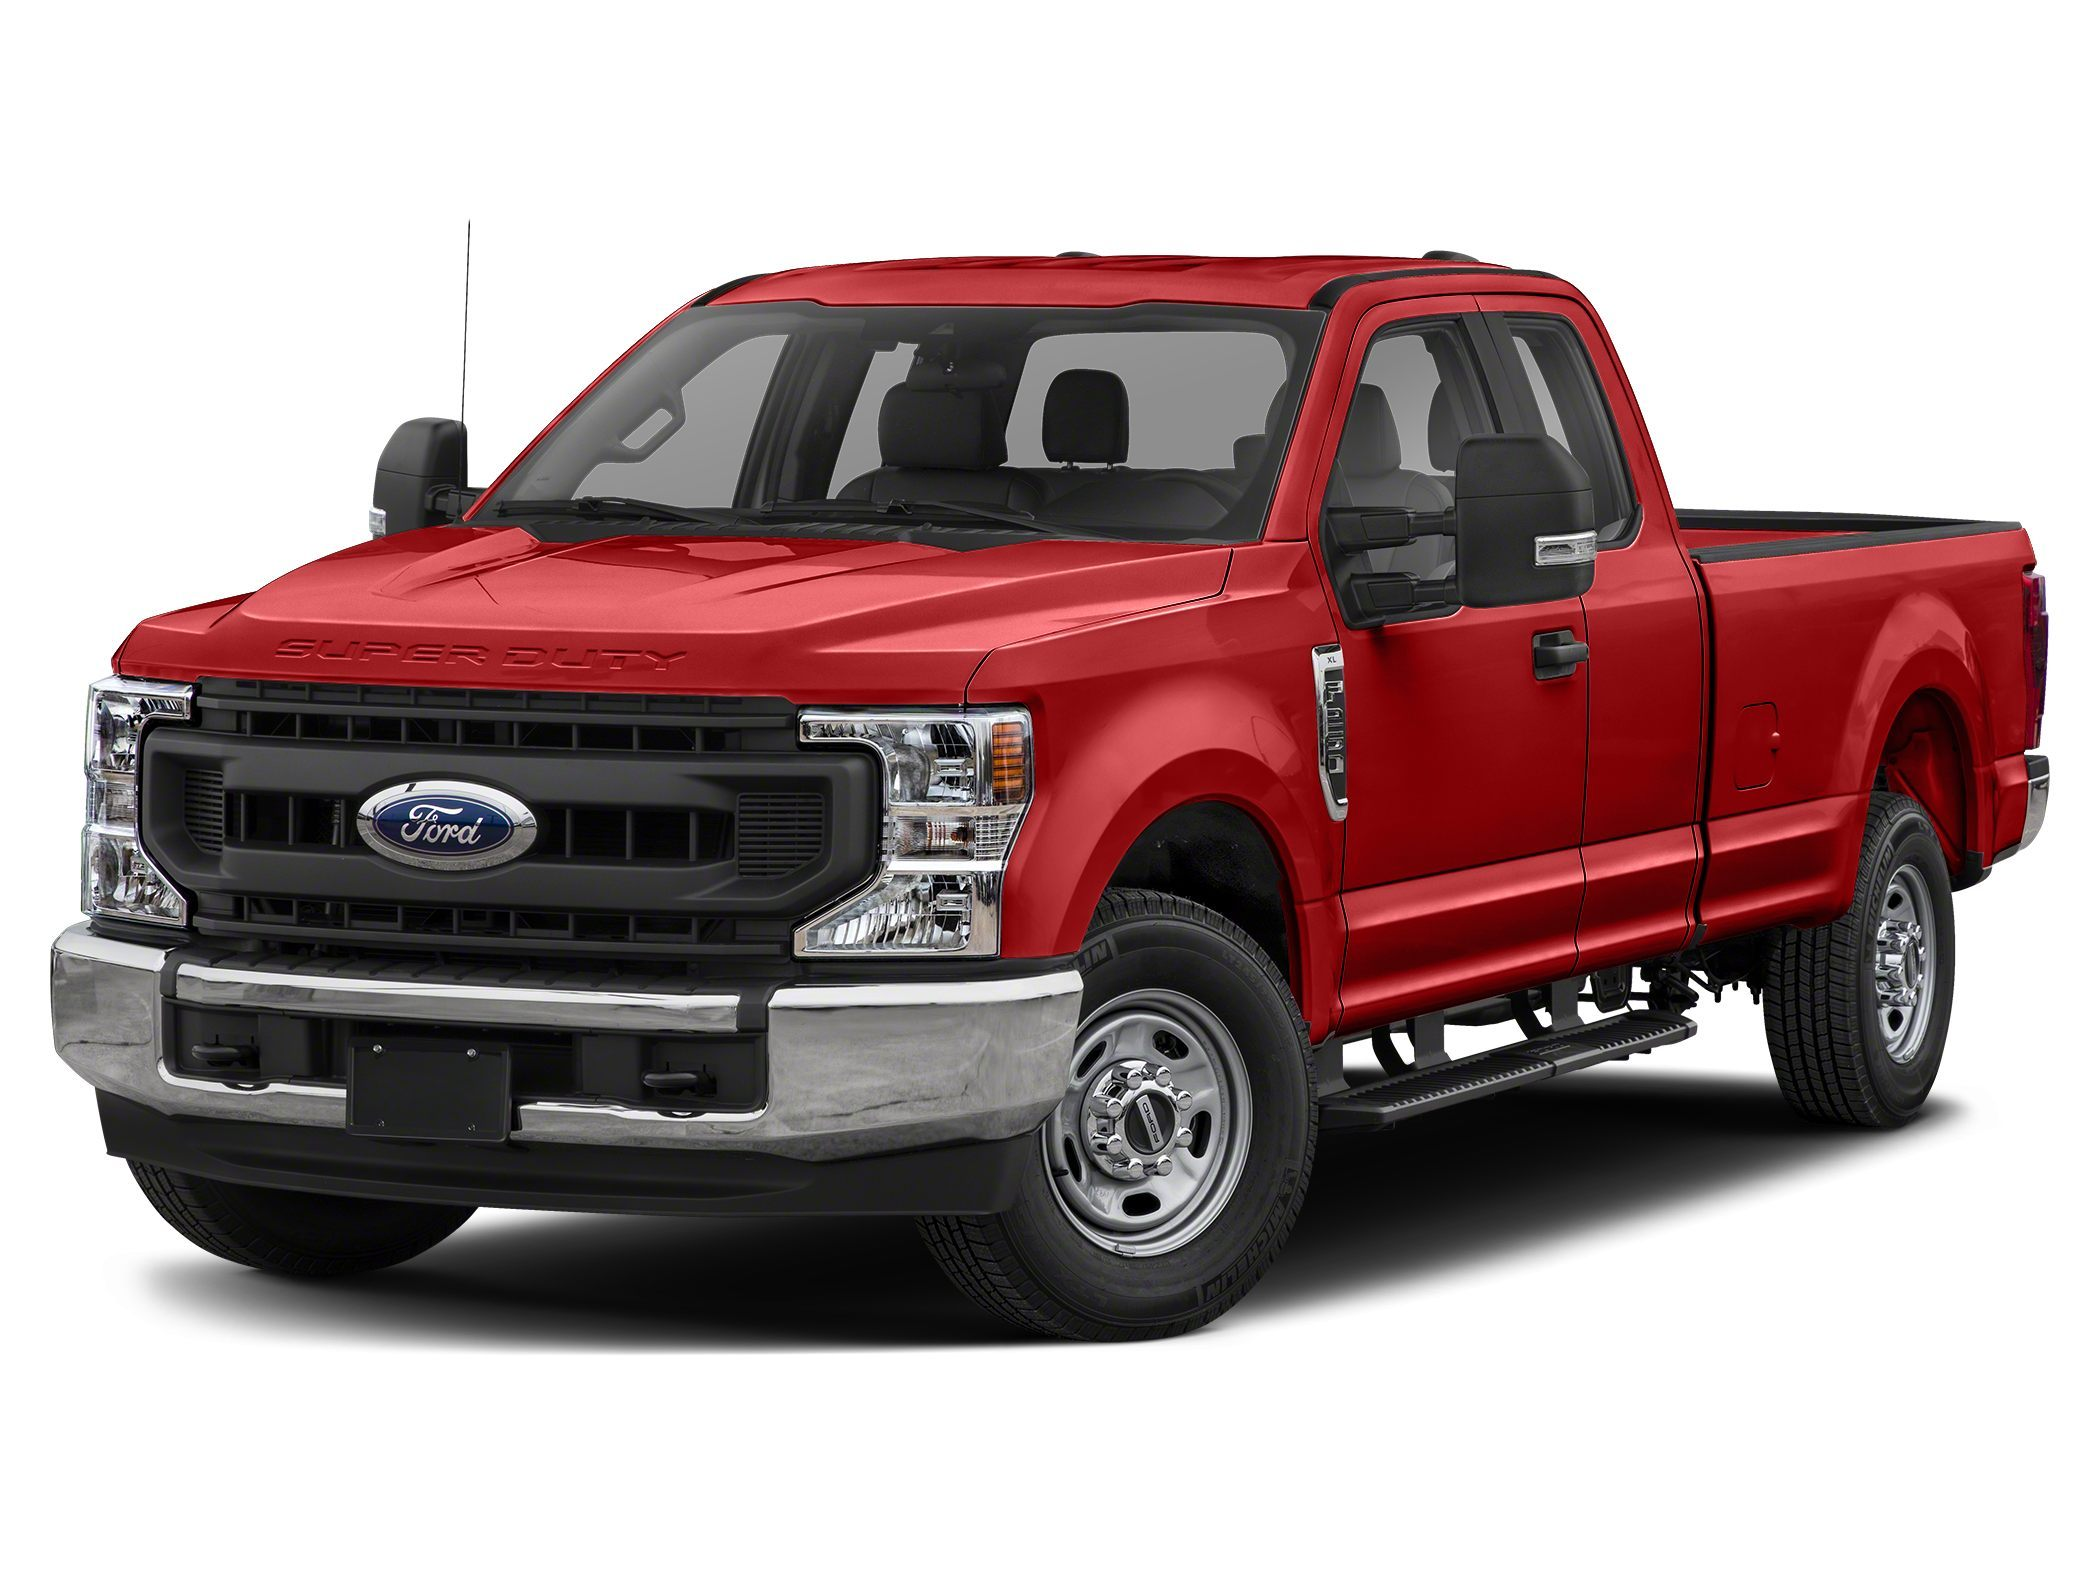 2020 Ford F-250 Four-Wheel Drive with Locking Differential